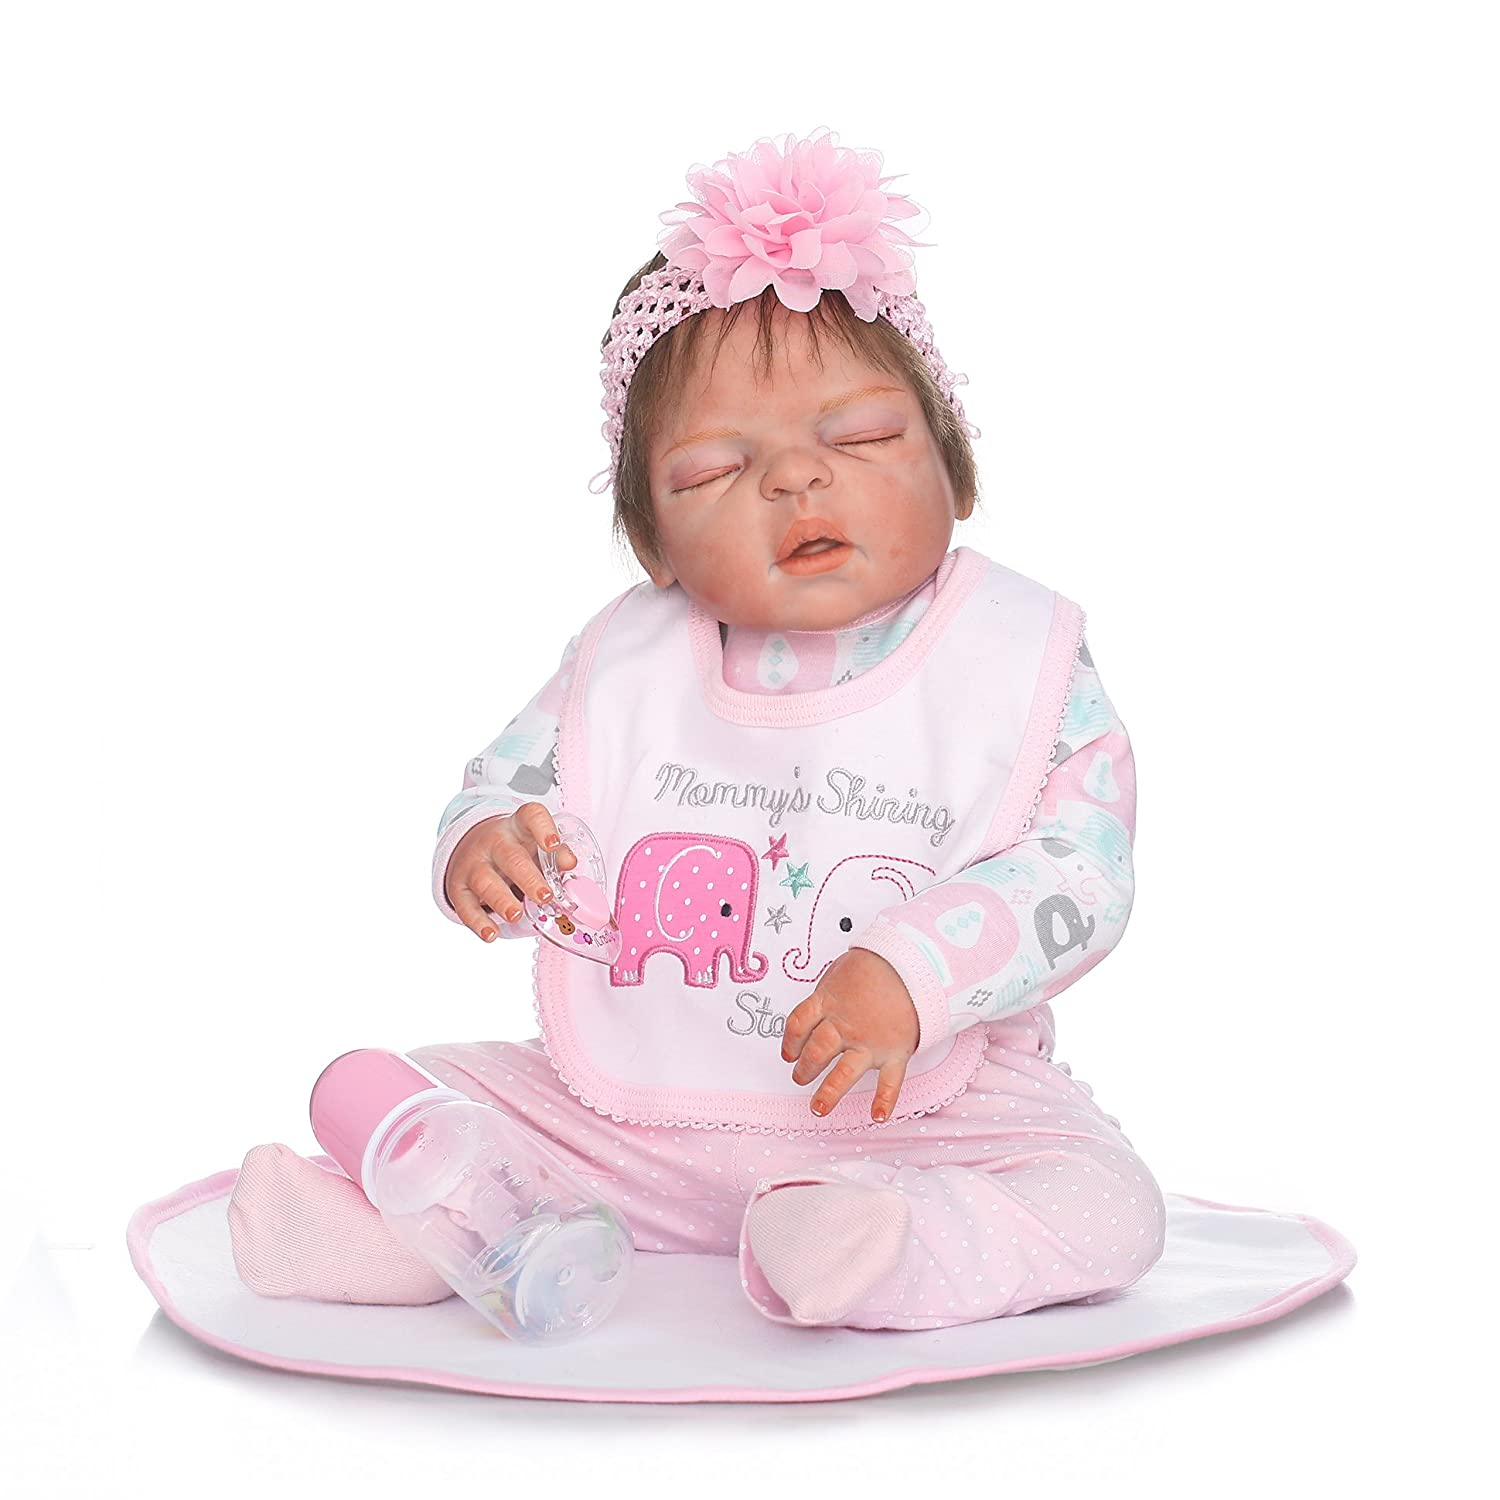 Aimeedoll 22inch Full Body Anatomically Correct Reborn Girl Doll Real Newborn Baby Size Bath Toy Waterproof